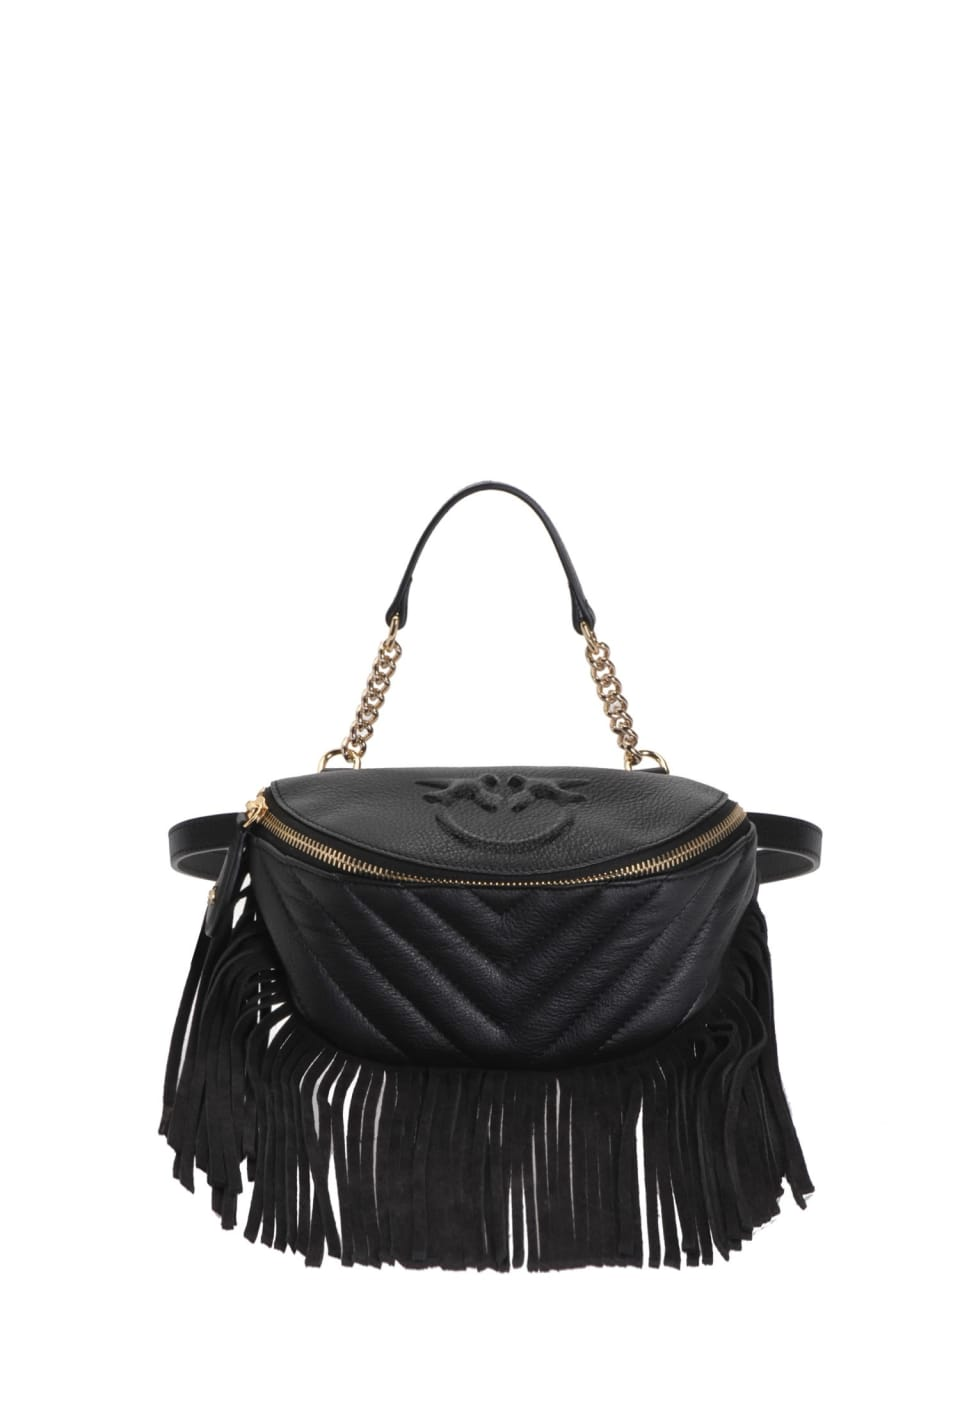 Mini Fringes Bum Bag in nappa leather - Pinko